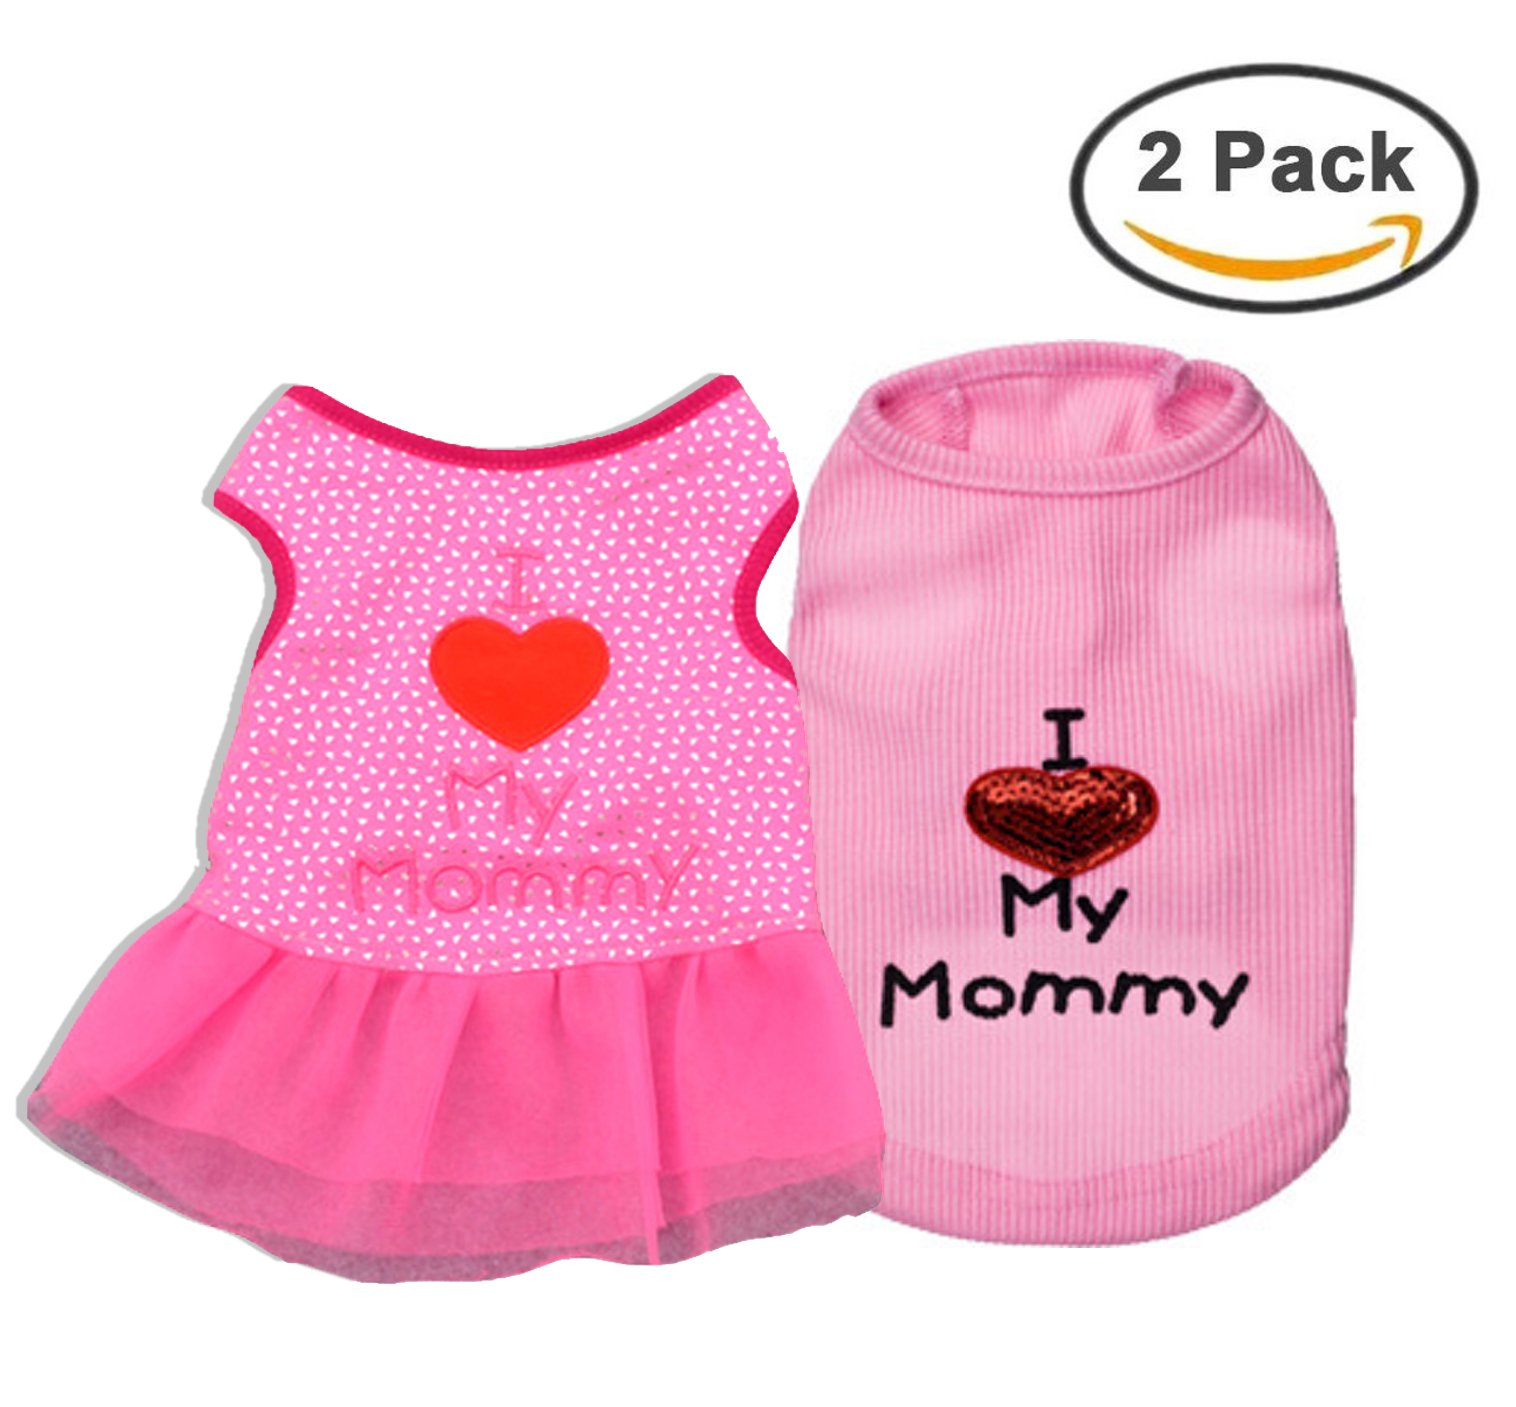 Ollypet Set of 2 Dog Clothes For Small Dogs I Love Mommy Shirt Dress Girl Puppy Cat Pink Pet Cute Summer Chihuahua Yorkie Outfit L